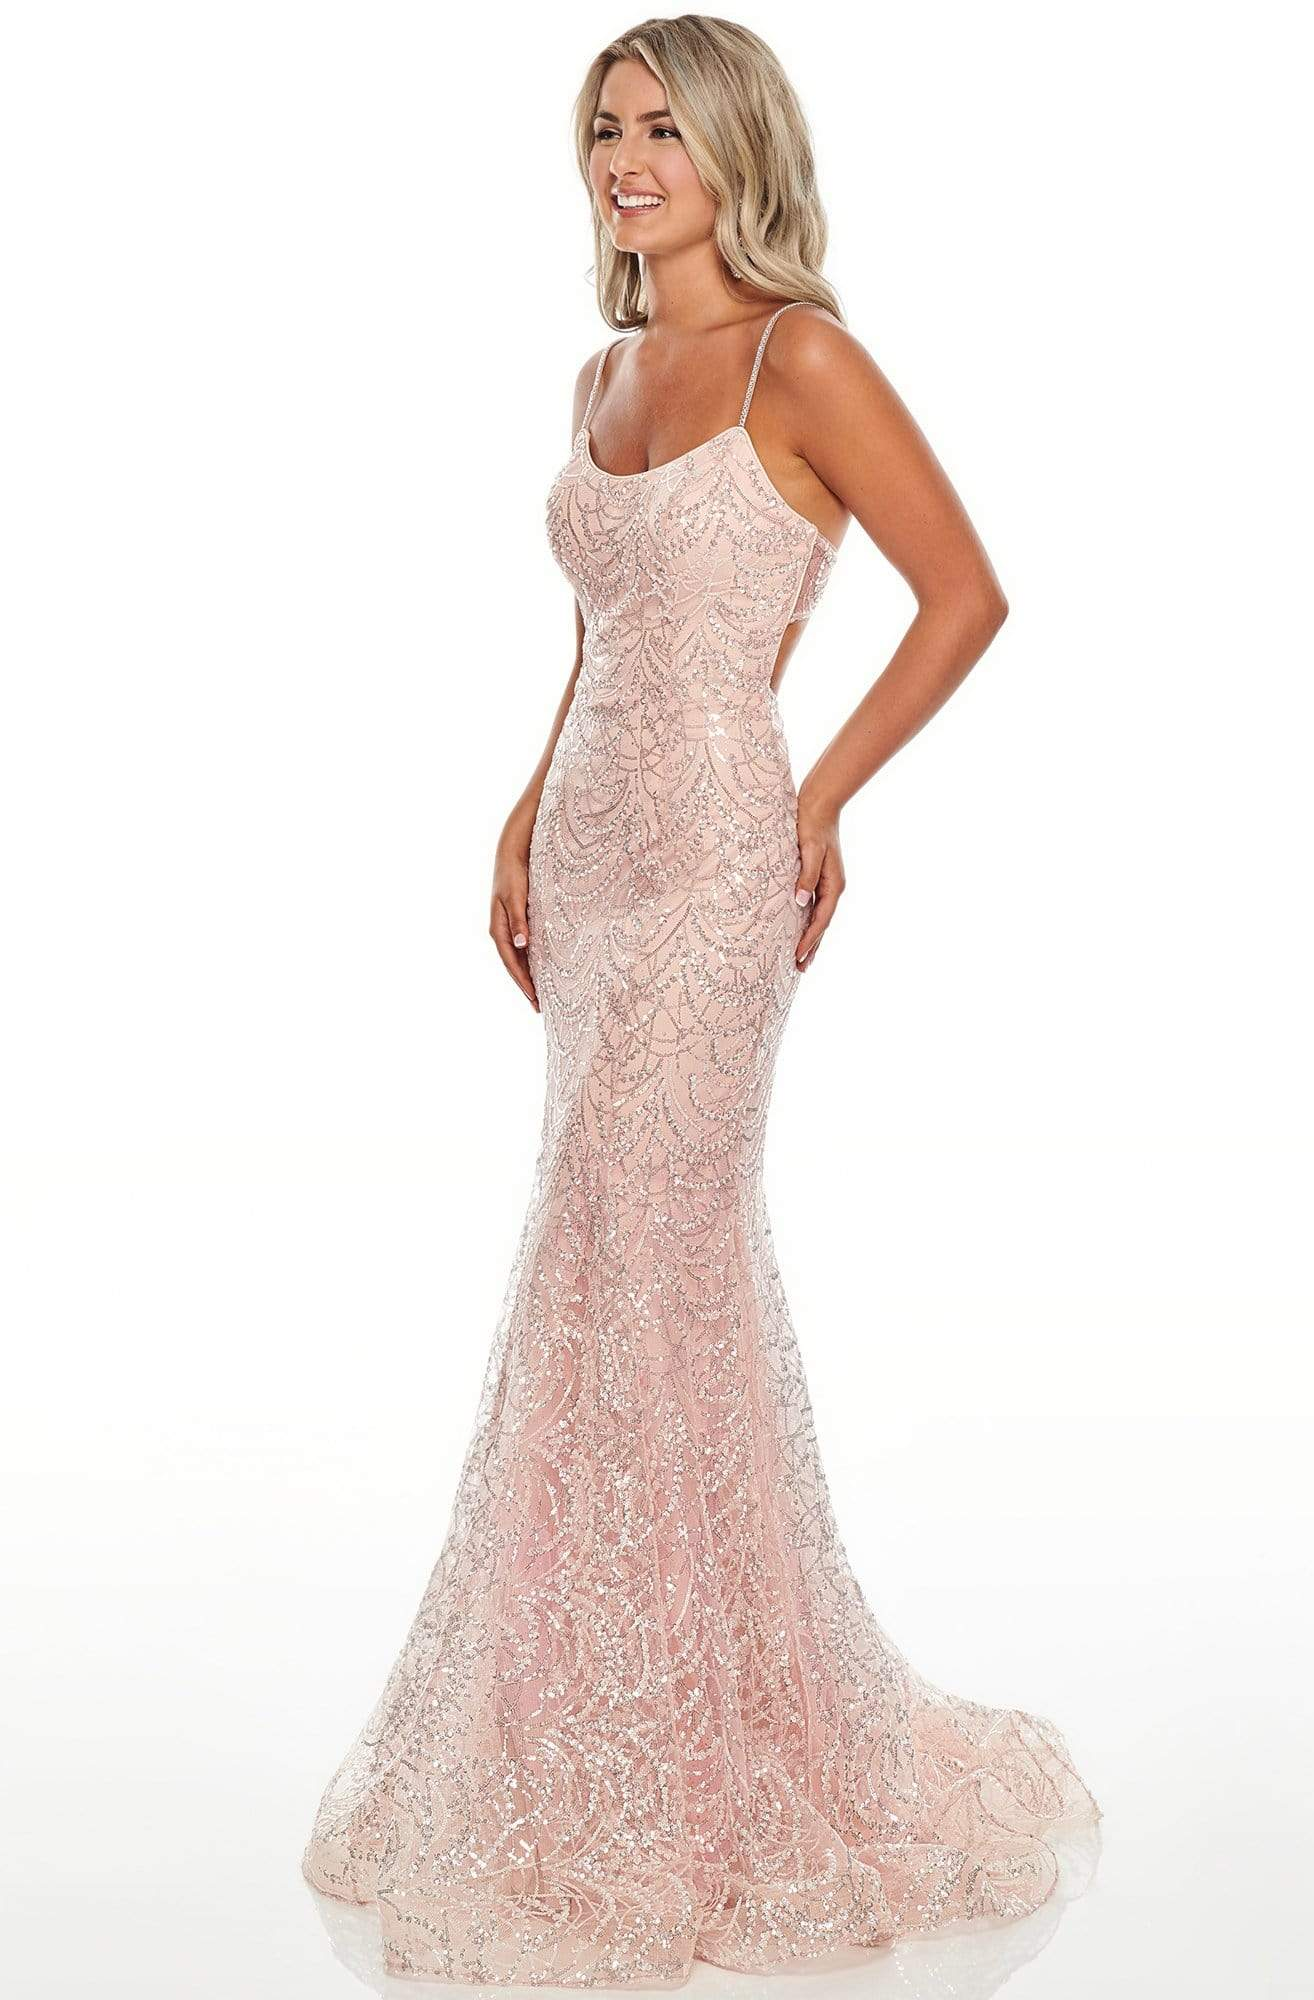 Rachel Allan Prom - 7112 Scoop Sequined Trumpet Dress Prom Dresses 2 / Blush